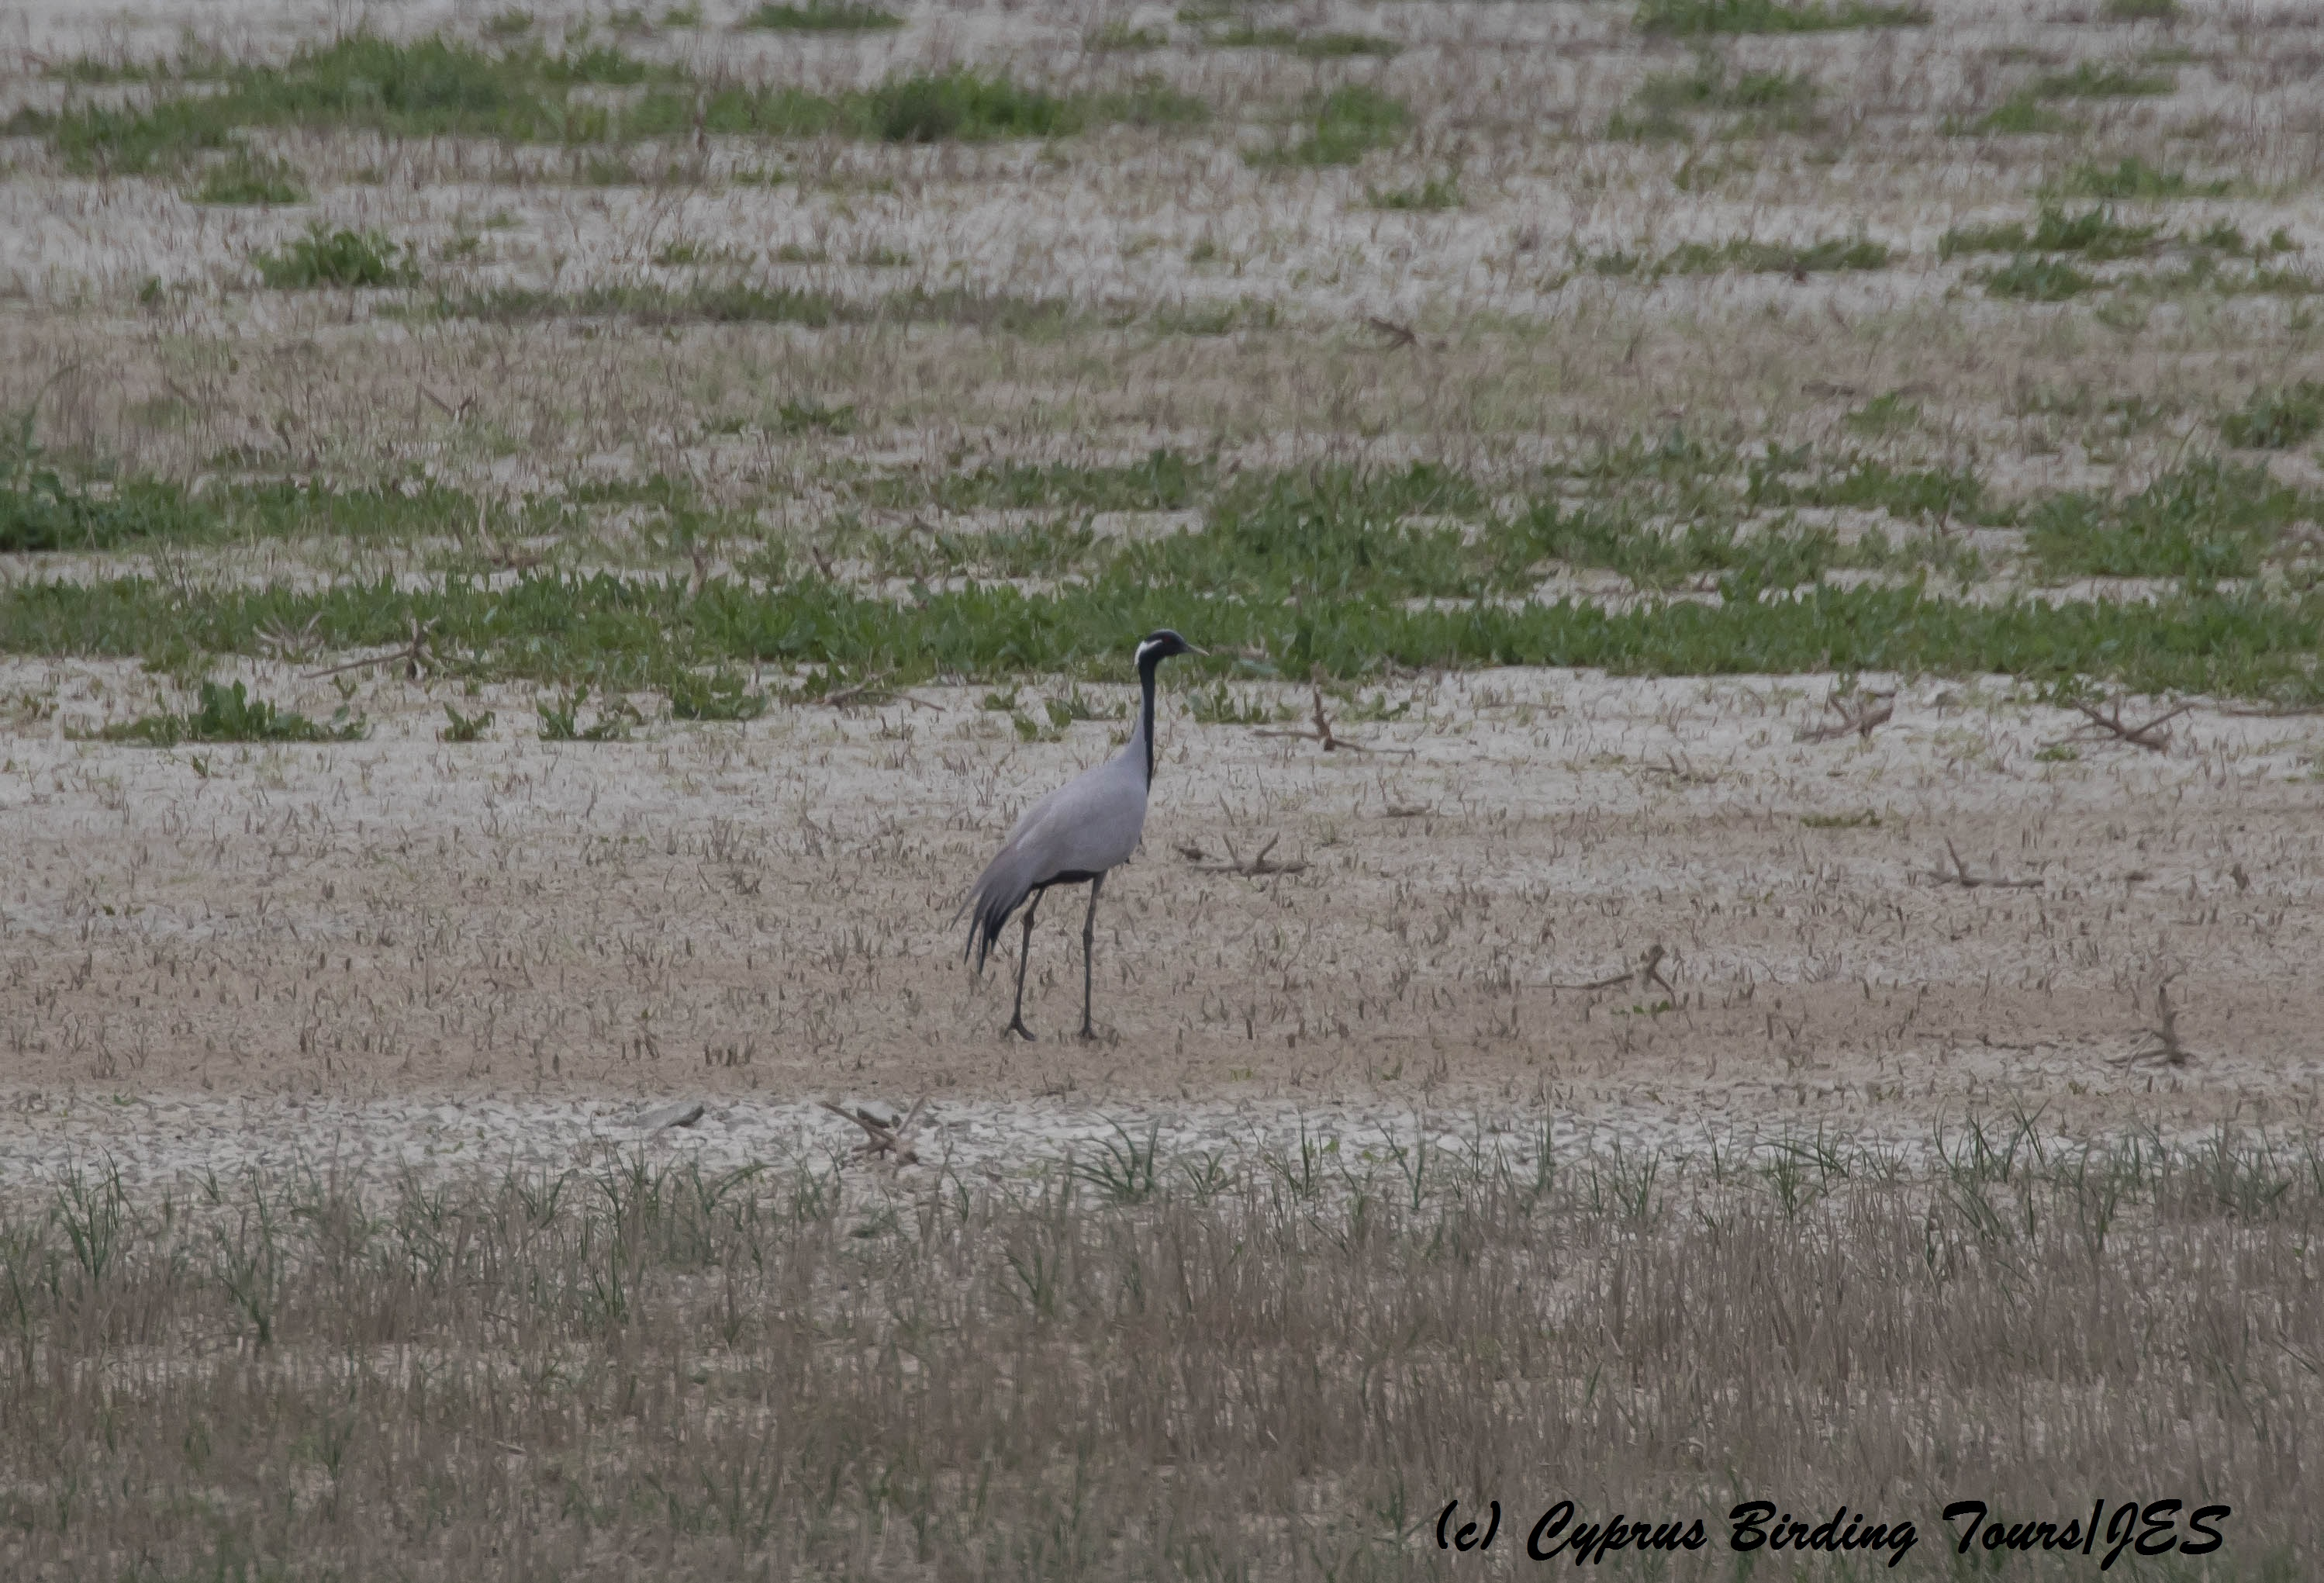 Demoiselle Crane, Kouklia Dam 25th March 2016 (c) Cyprus Birding Tours